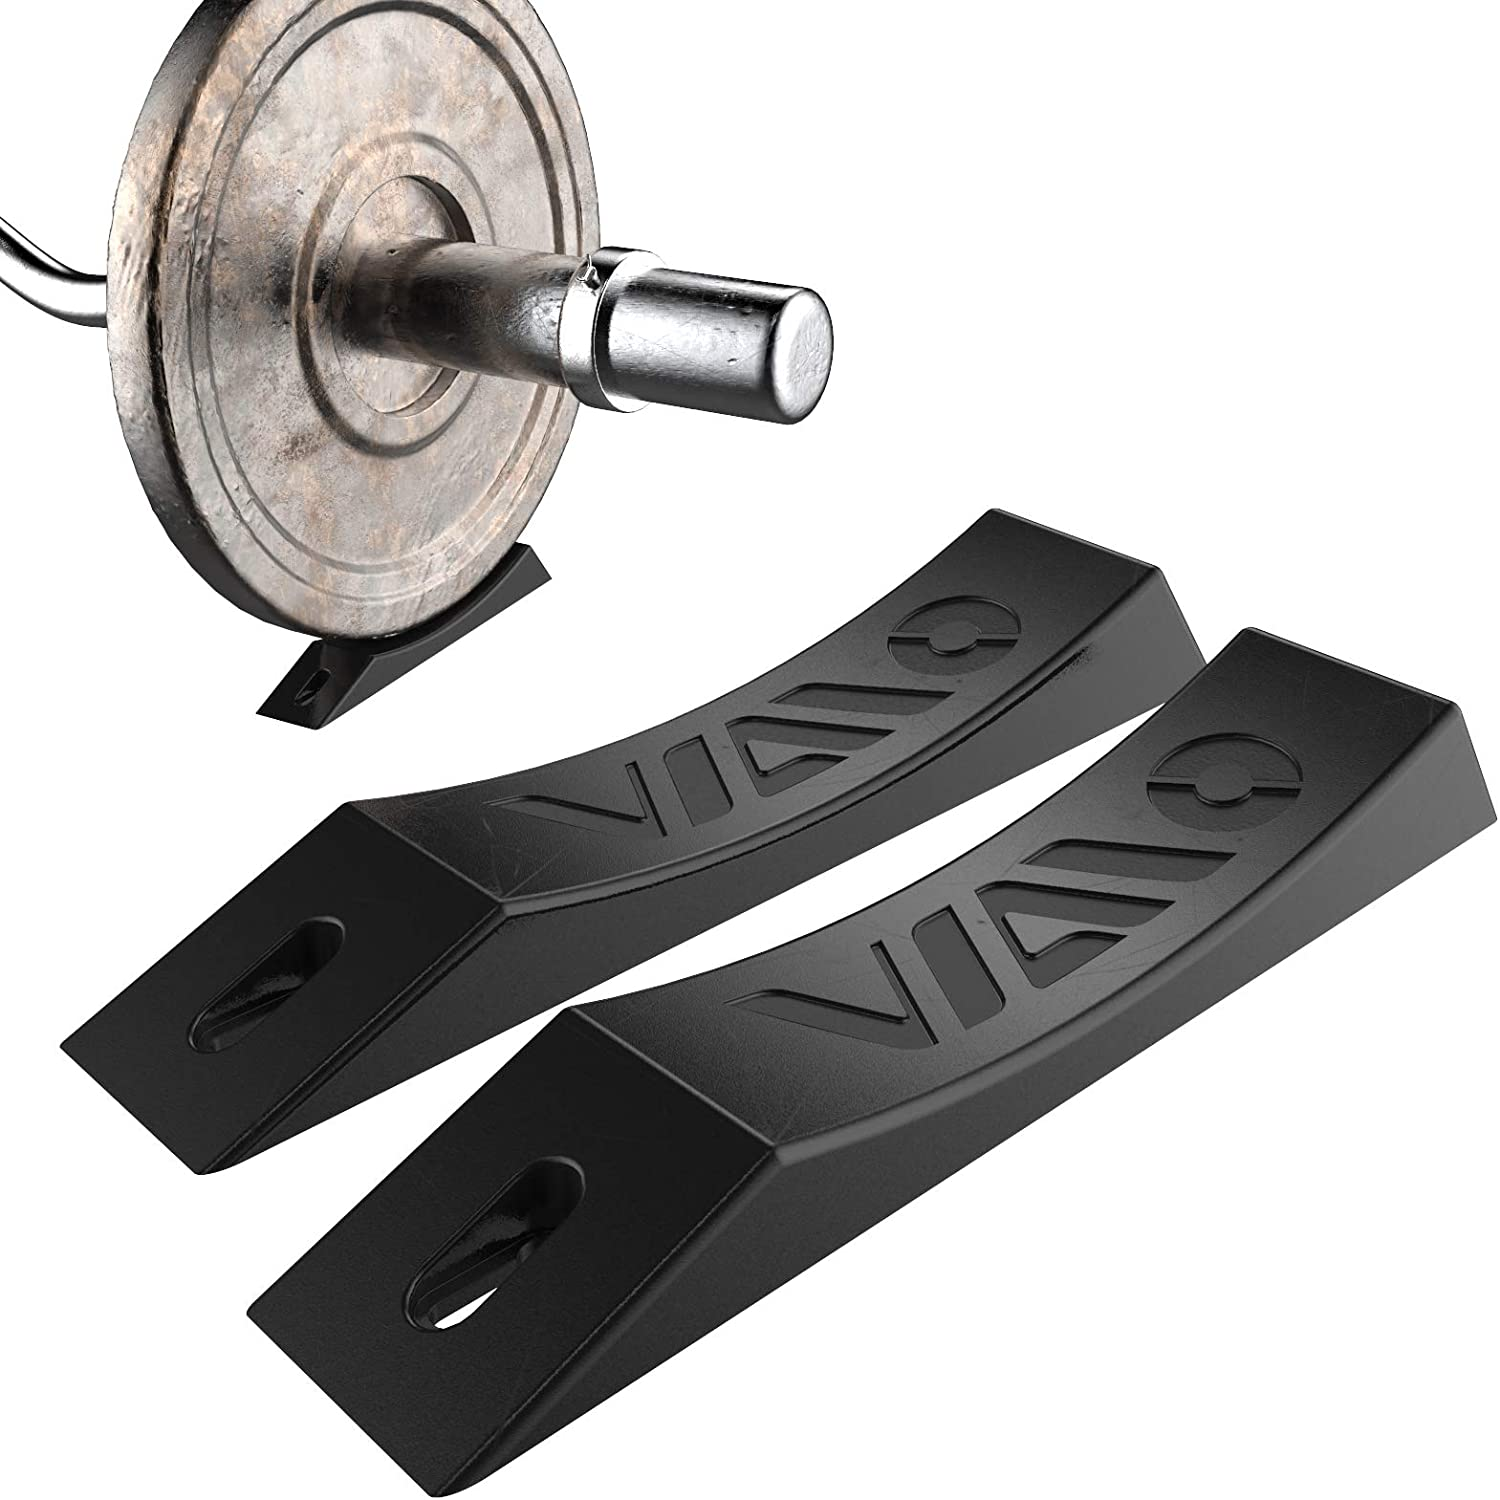 VIAIO Barbell Jack, Effortless Loading/Unloading Barbell & Plates,Bear at Least 1000 Pounds, Small and Portable, Durable, Perfect for Grip Plate, Weight Plate, Bumper Plate, Strength Training Plate : Sports & Outdoors